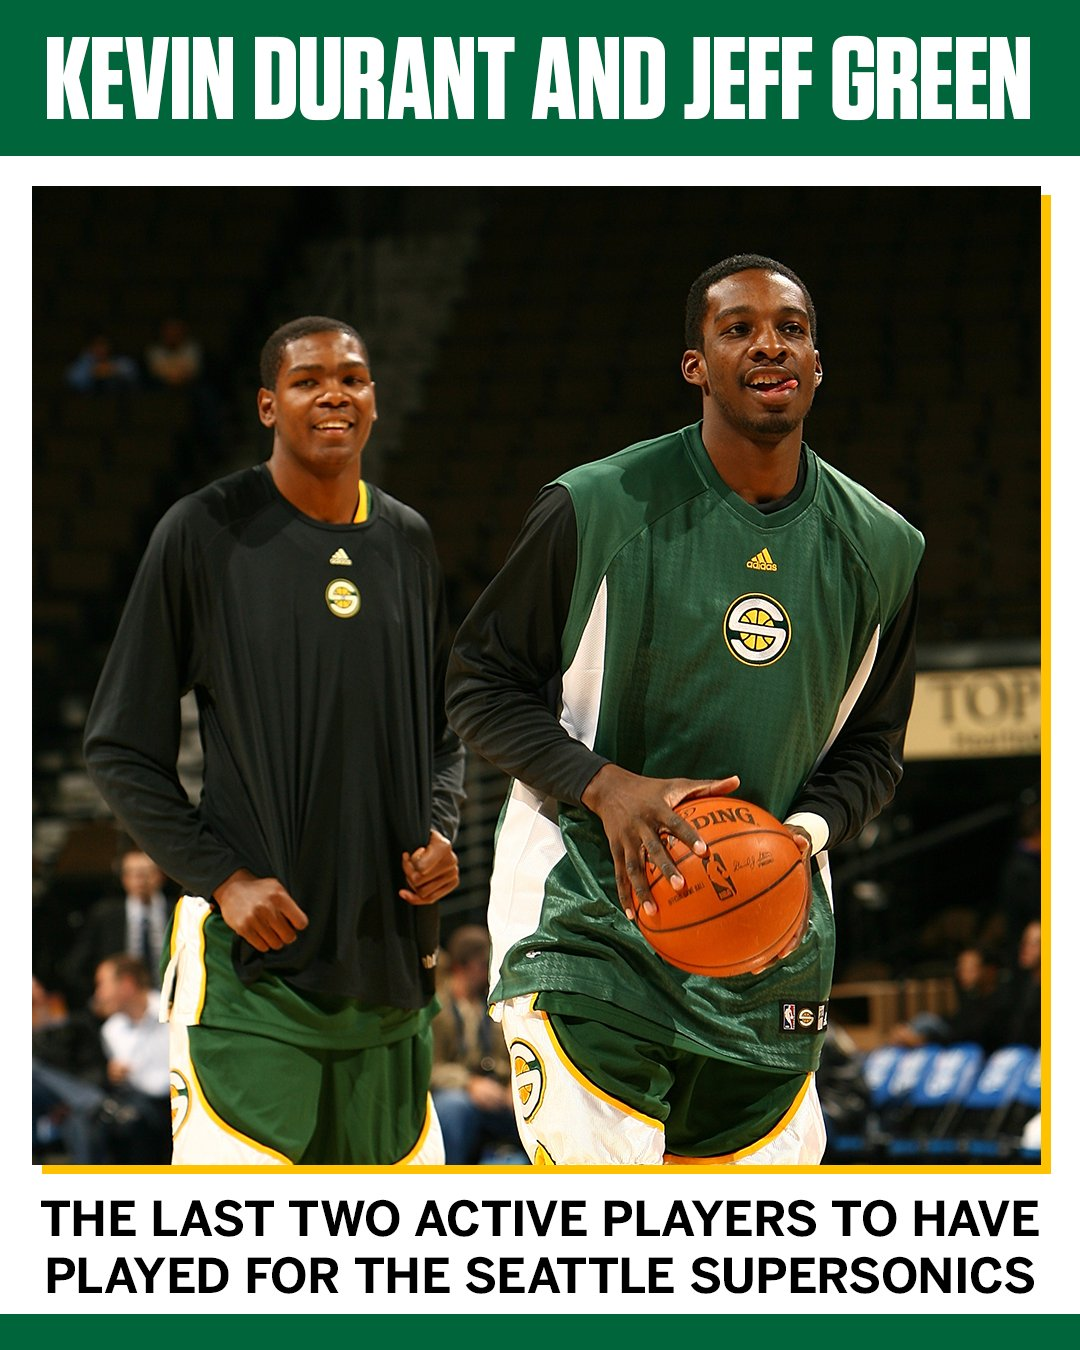 KD and Jeff Green are keeping the Sonics connection alive after the retirement of Nick Collison. https://t.co/1yaZ9fh8Ma